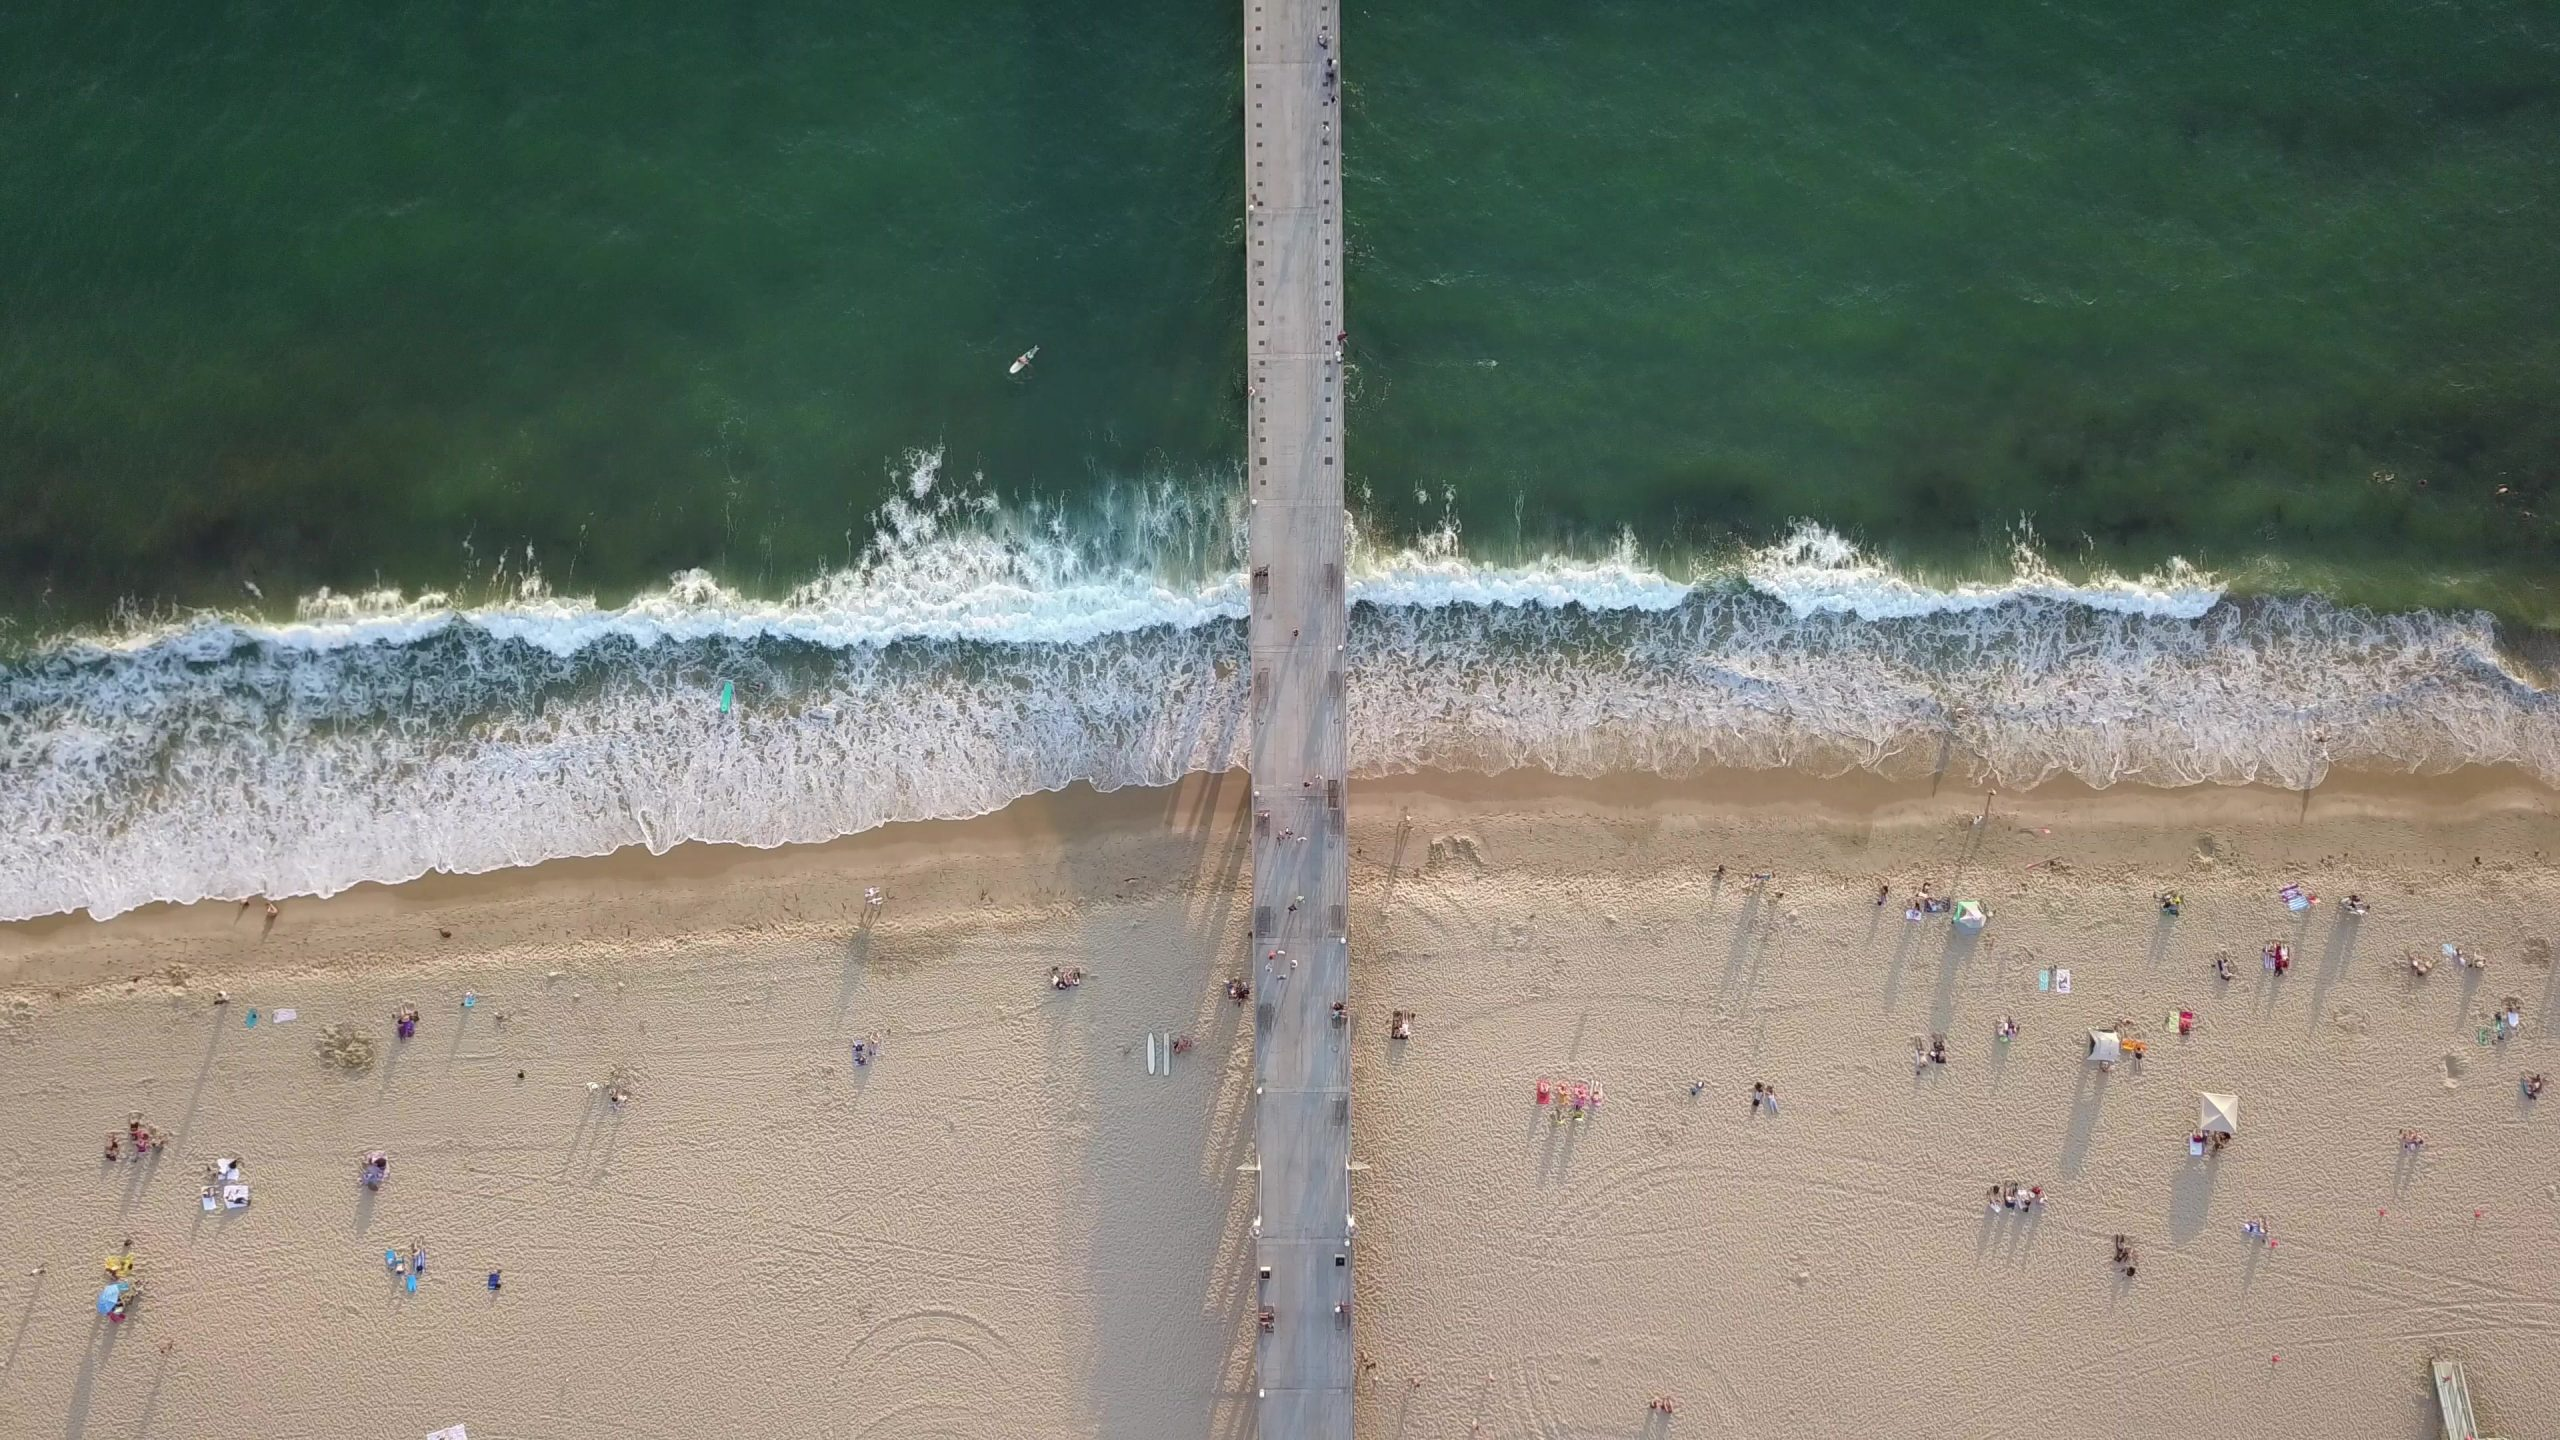 - Beaches in Southern California